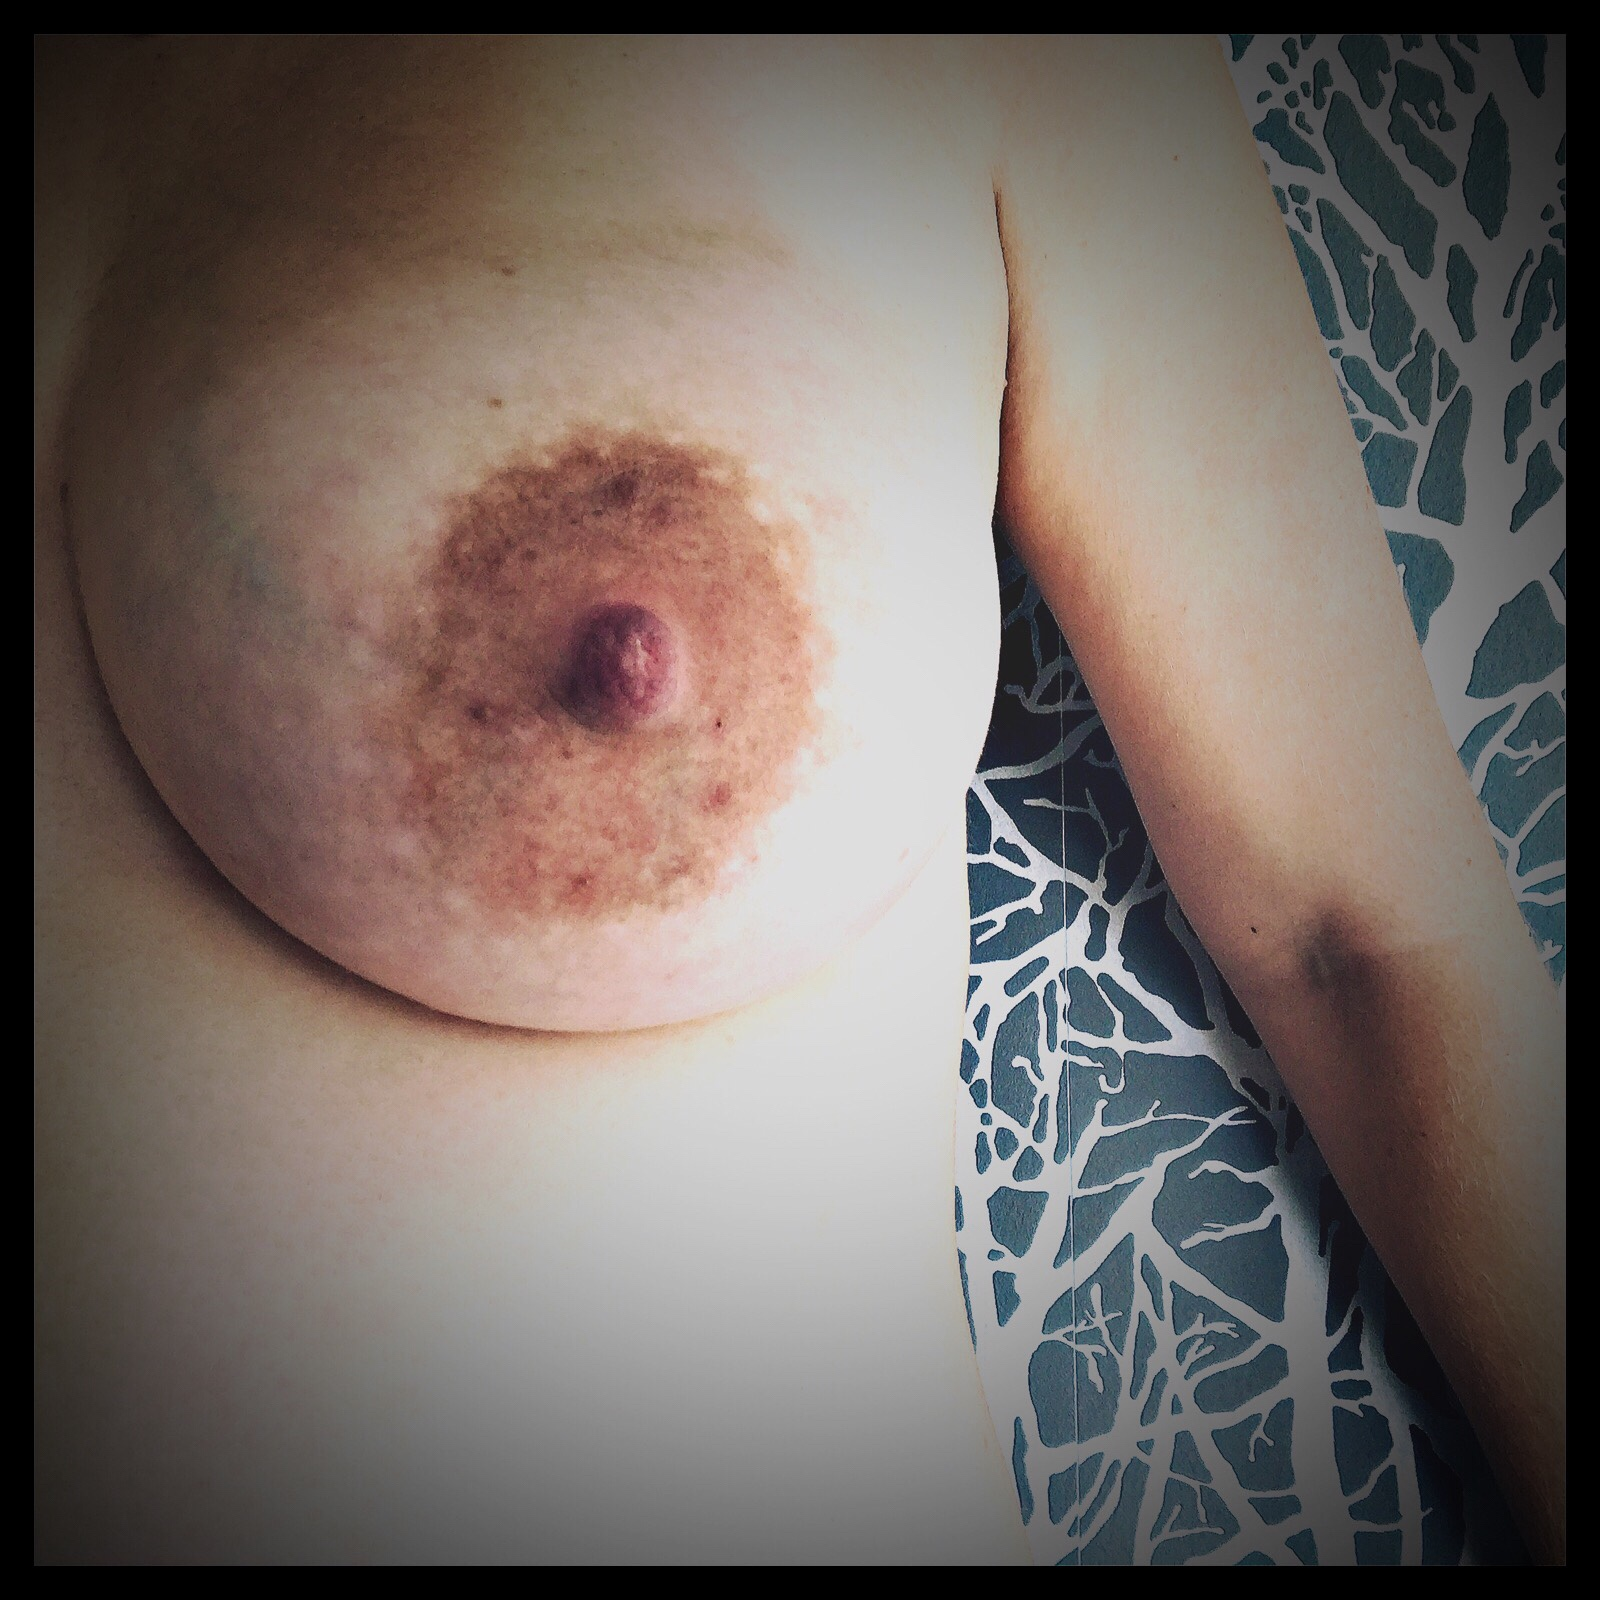 An image of my left breast with the focus on the large nipple